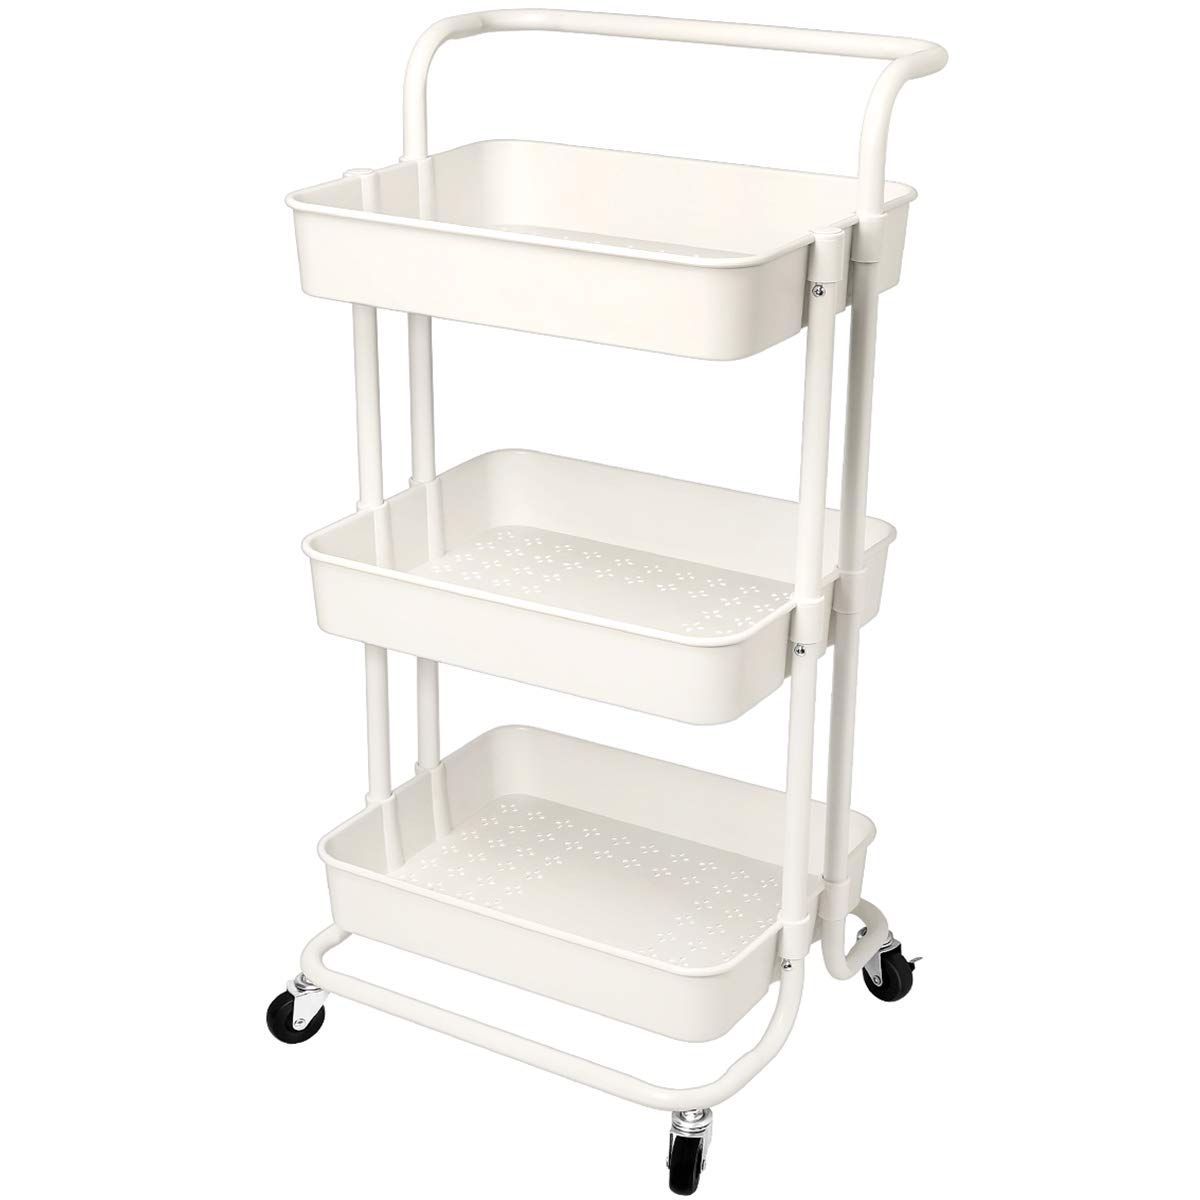 Homemaxs 3 Tier Utility Cart - Heavy Duty Rolling Cart with Handles and Roller Wheels Storage Cart for Kitchen, Coffee Bar, Microwave Cooking Station, Storage, Office, Bathroom (White)